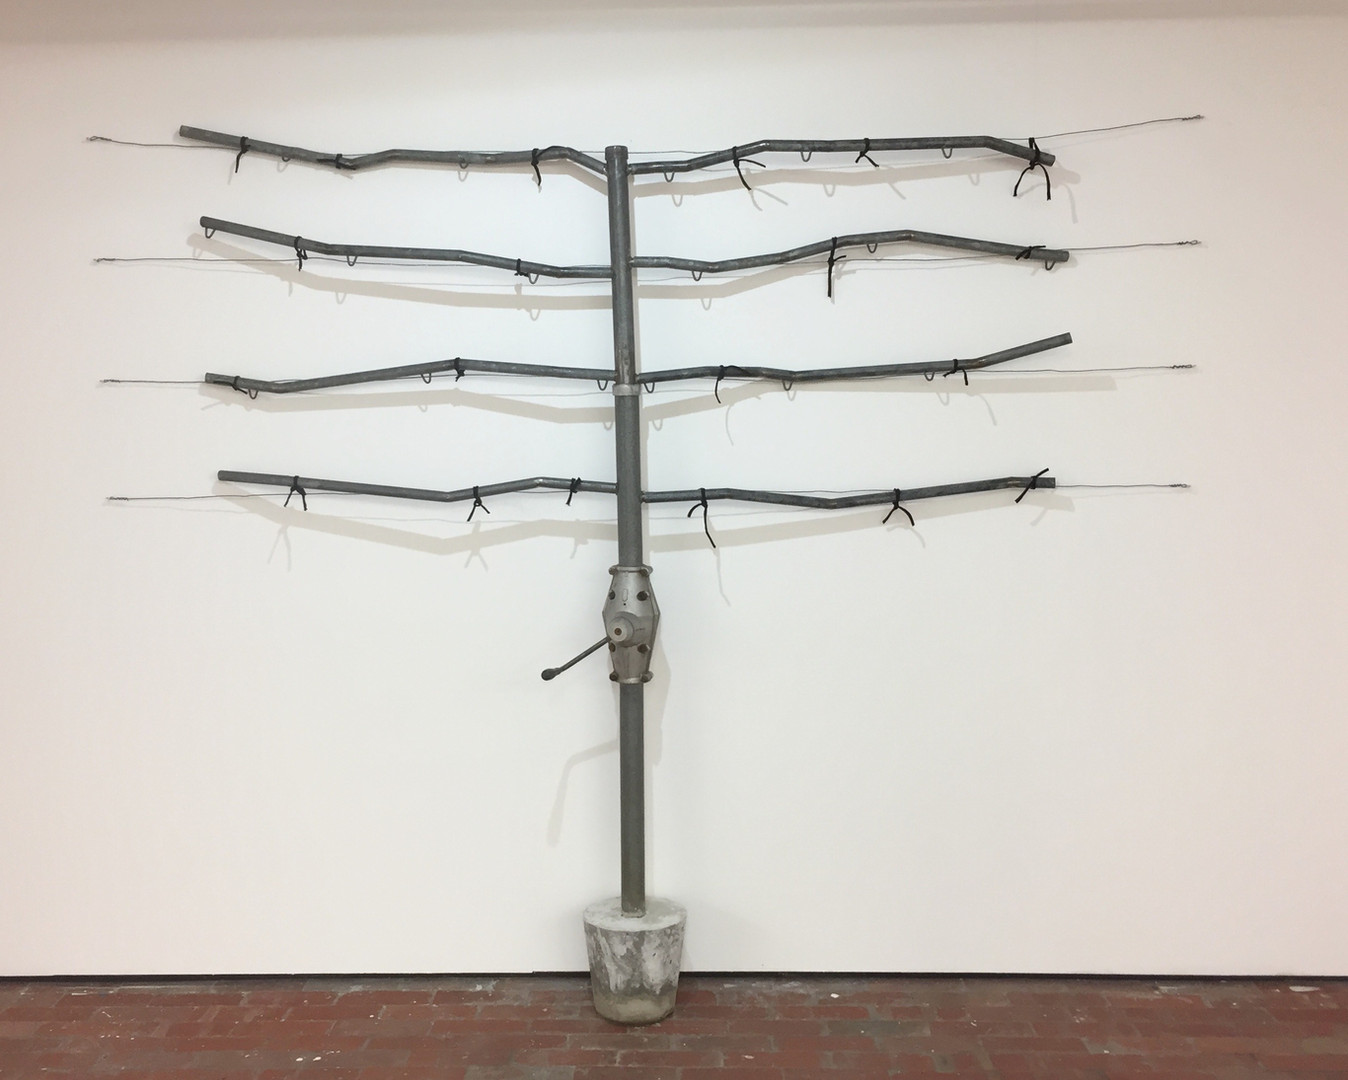 Espalier 2019, DomestiCITY @ C3 Contmeporary Artspace, Abbotsford.  Hills Hoist, cotton, steel, cement.  Dimenstions Variable